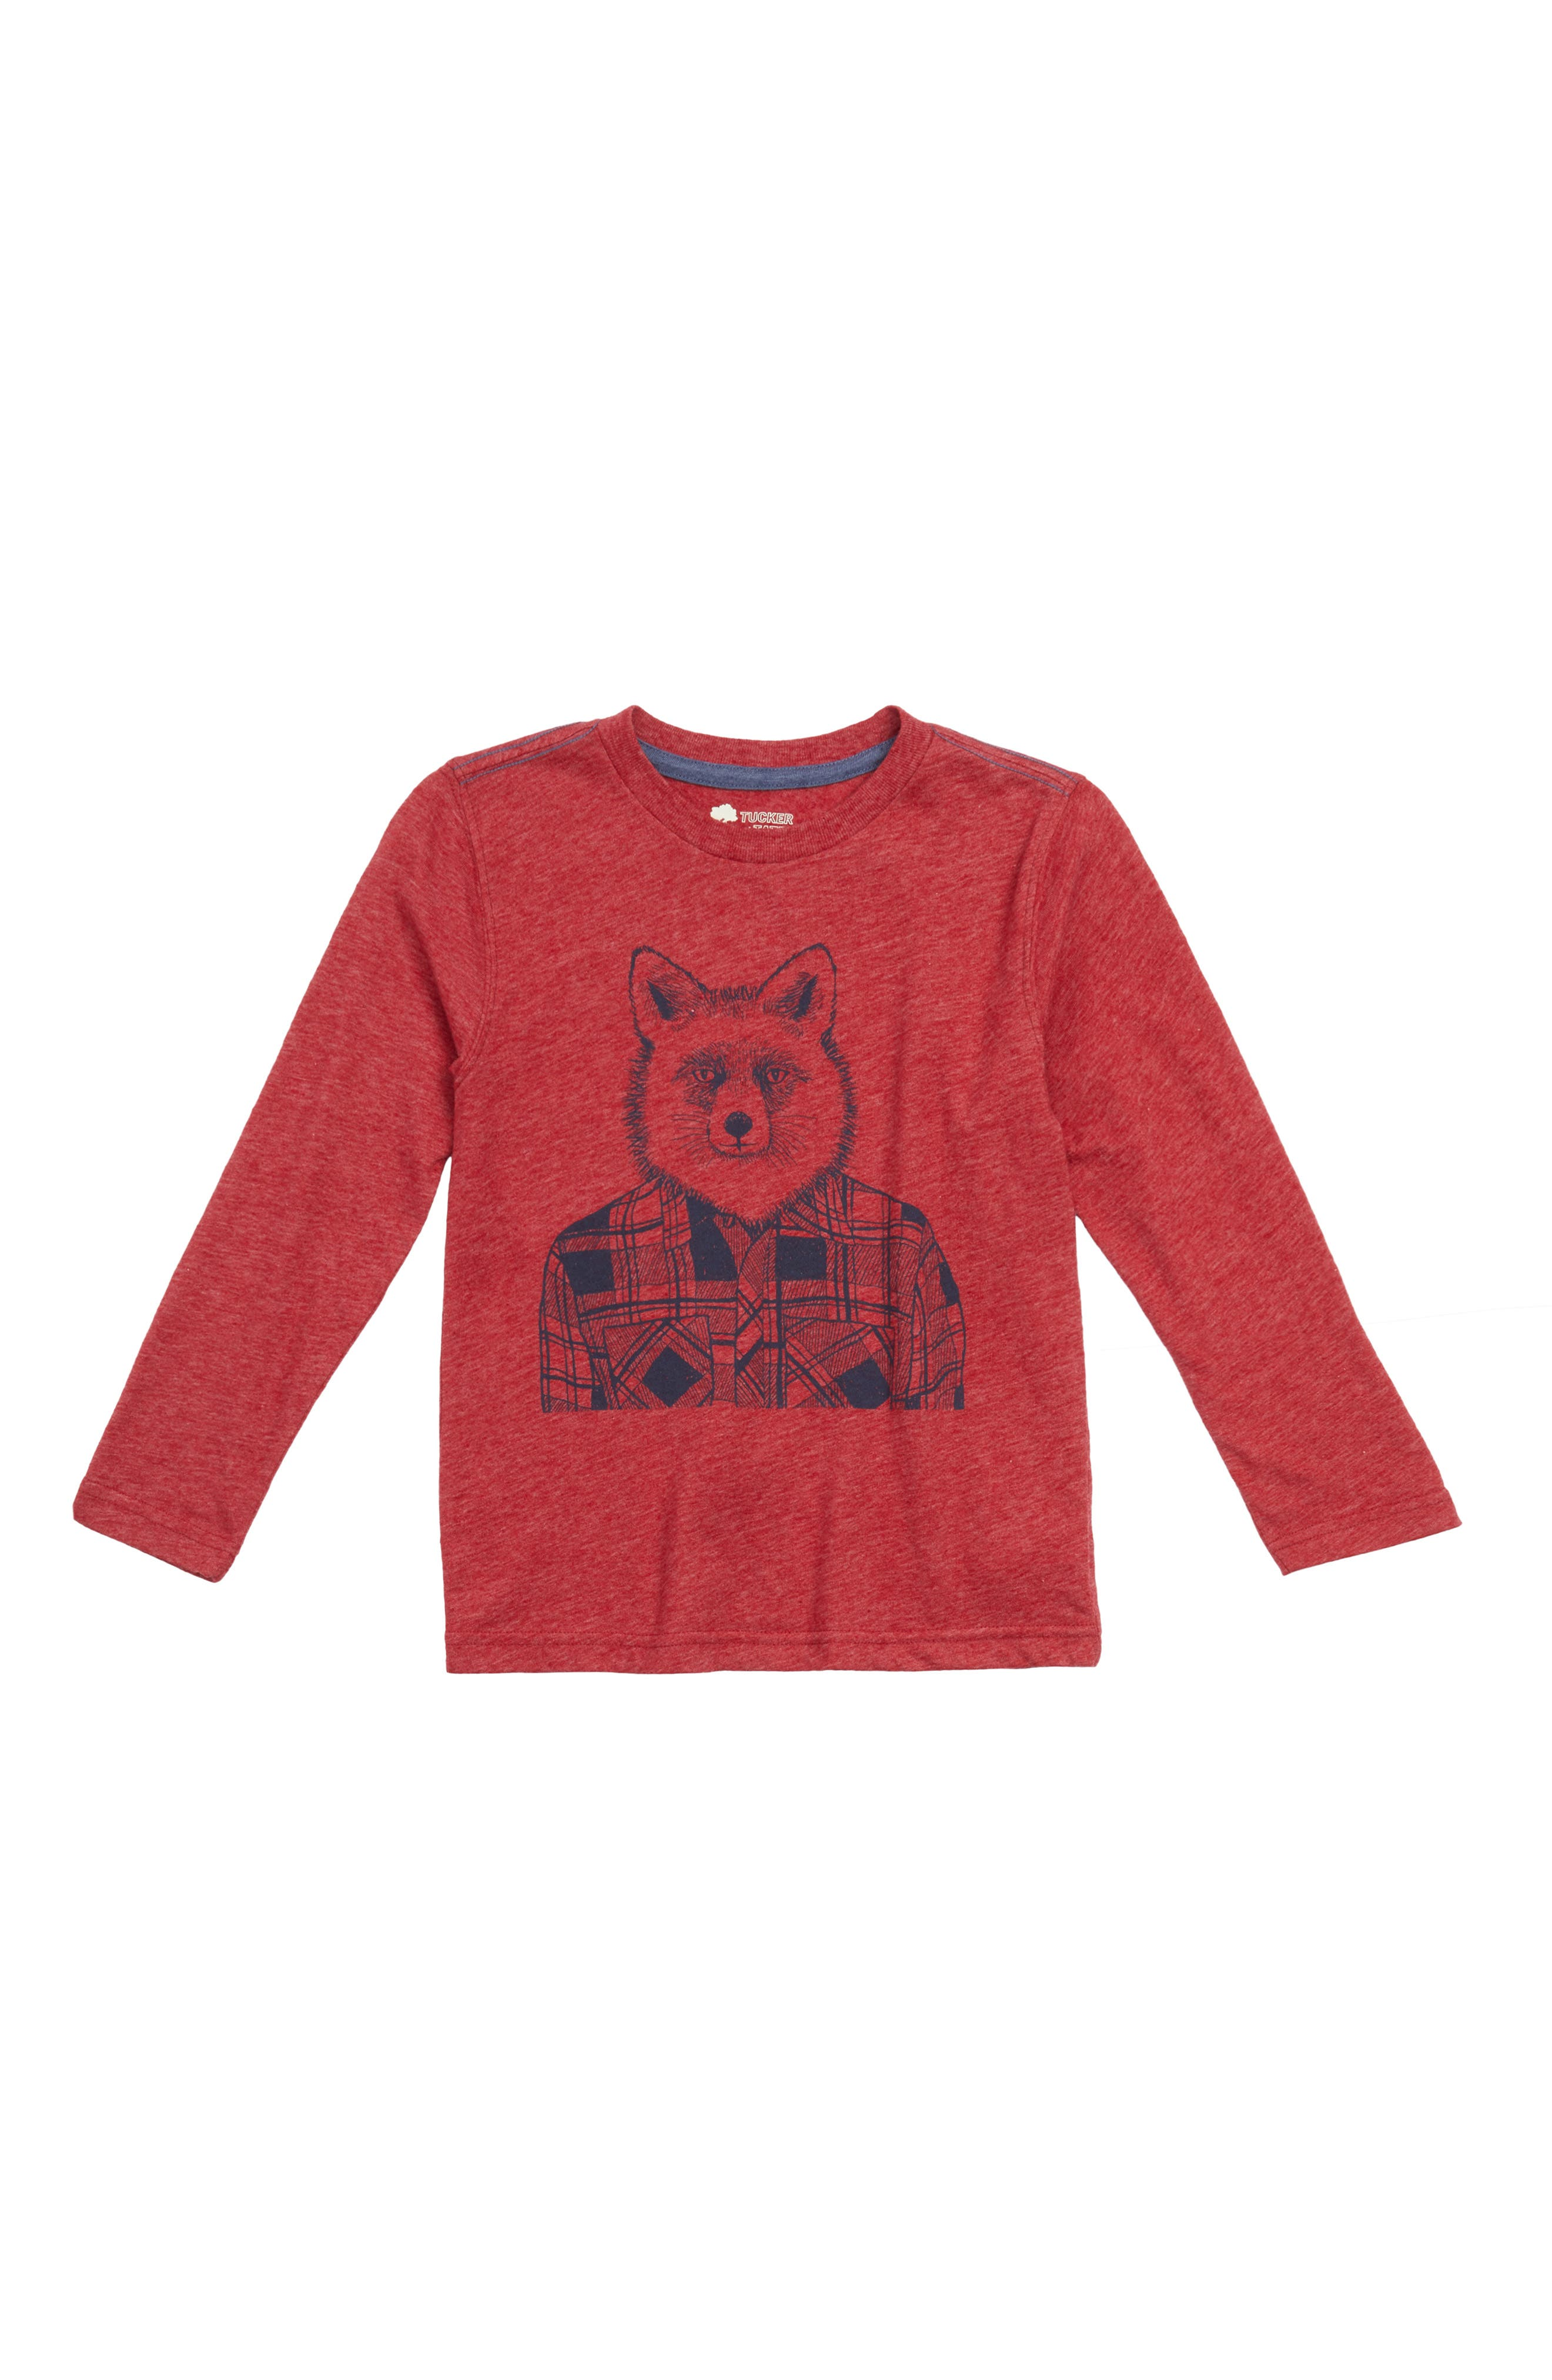 Tucker + Tate Graphic Tee (Toddler Boys & Little Boys)